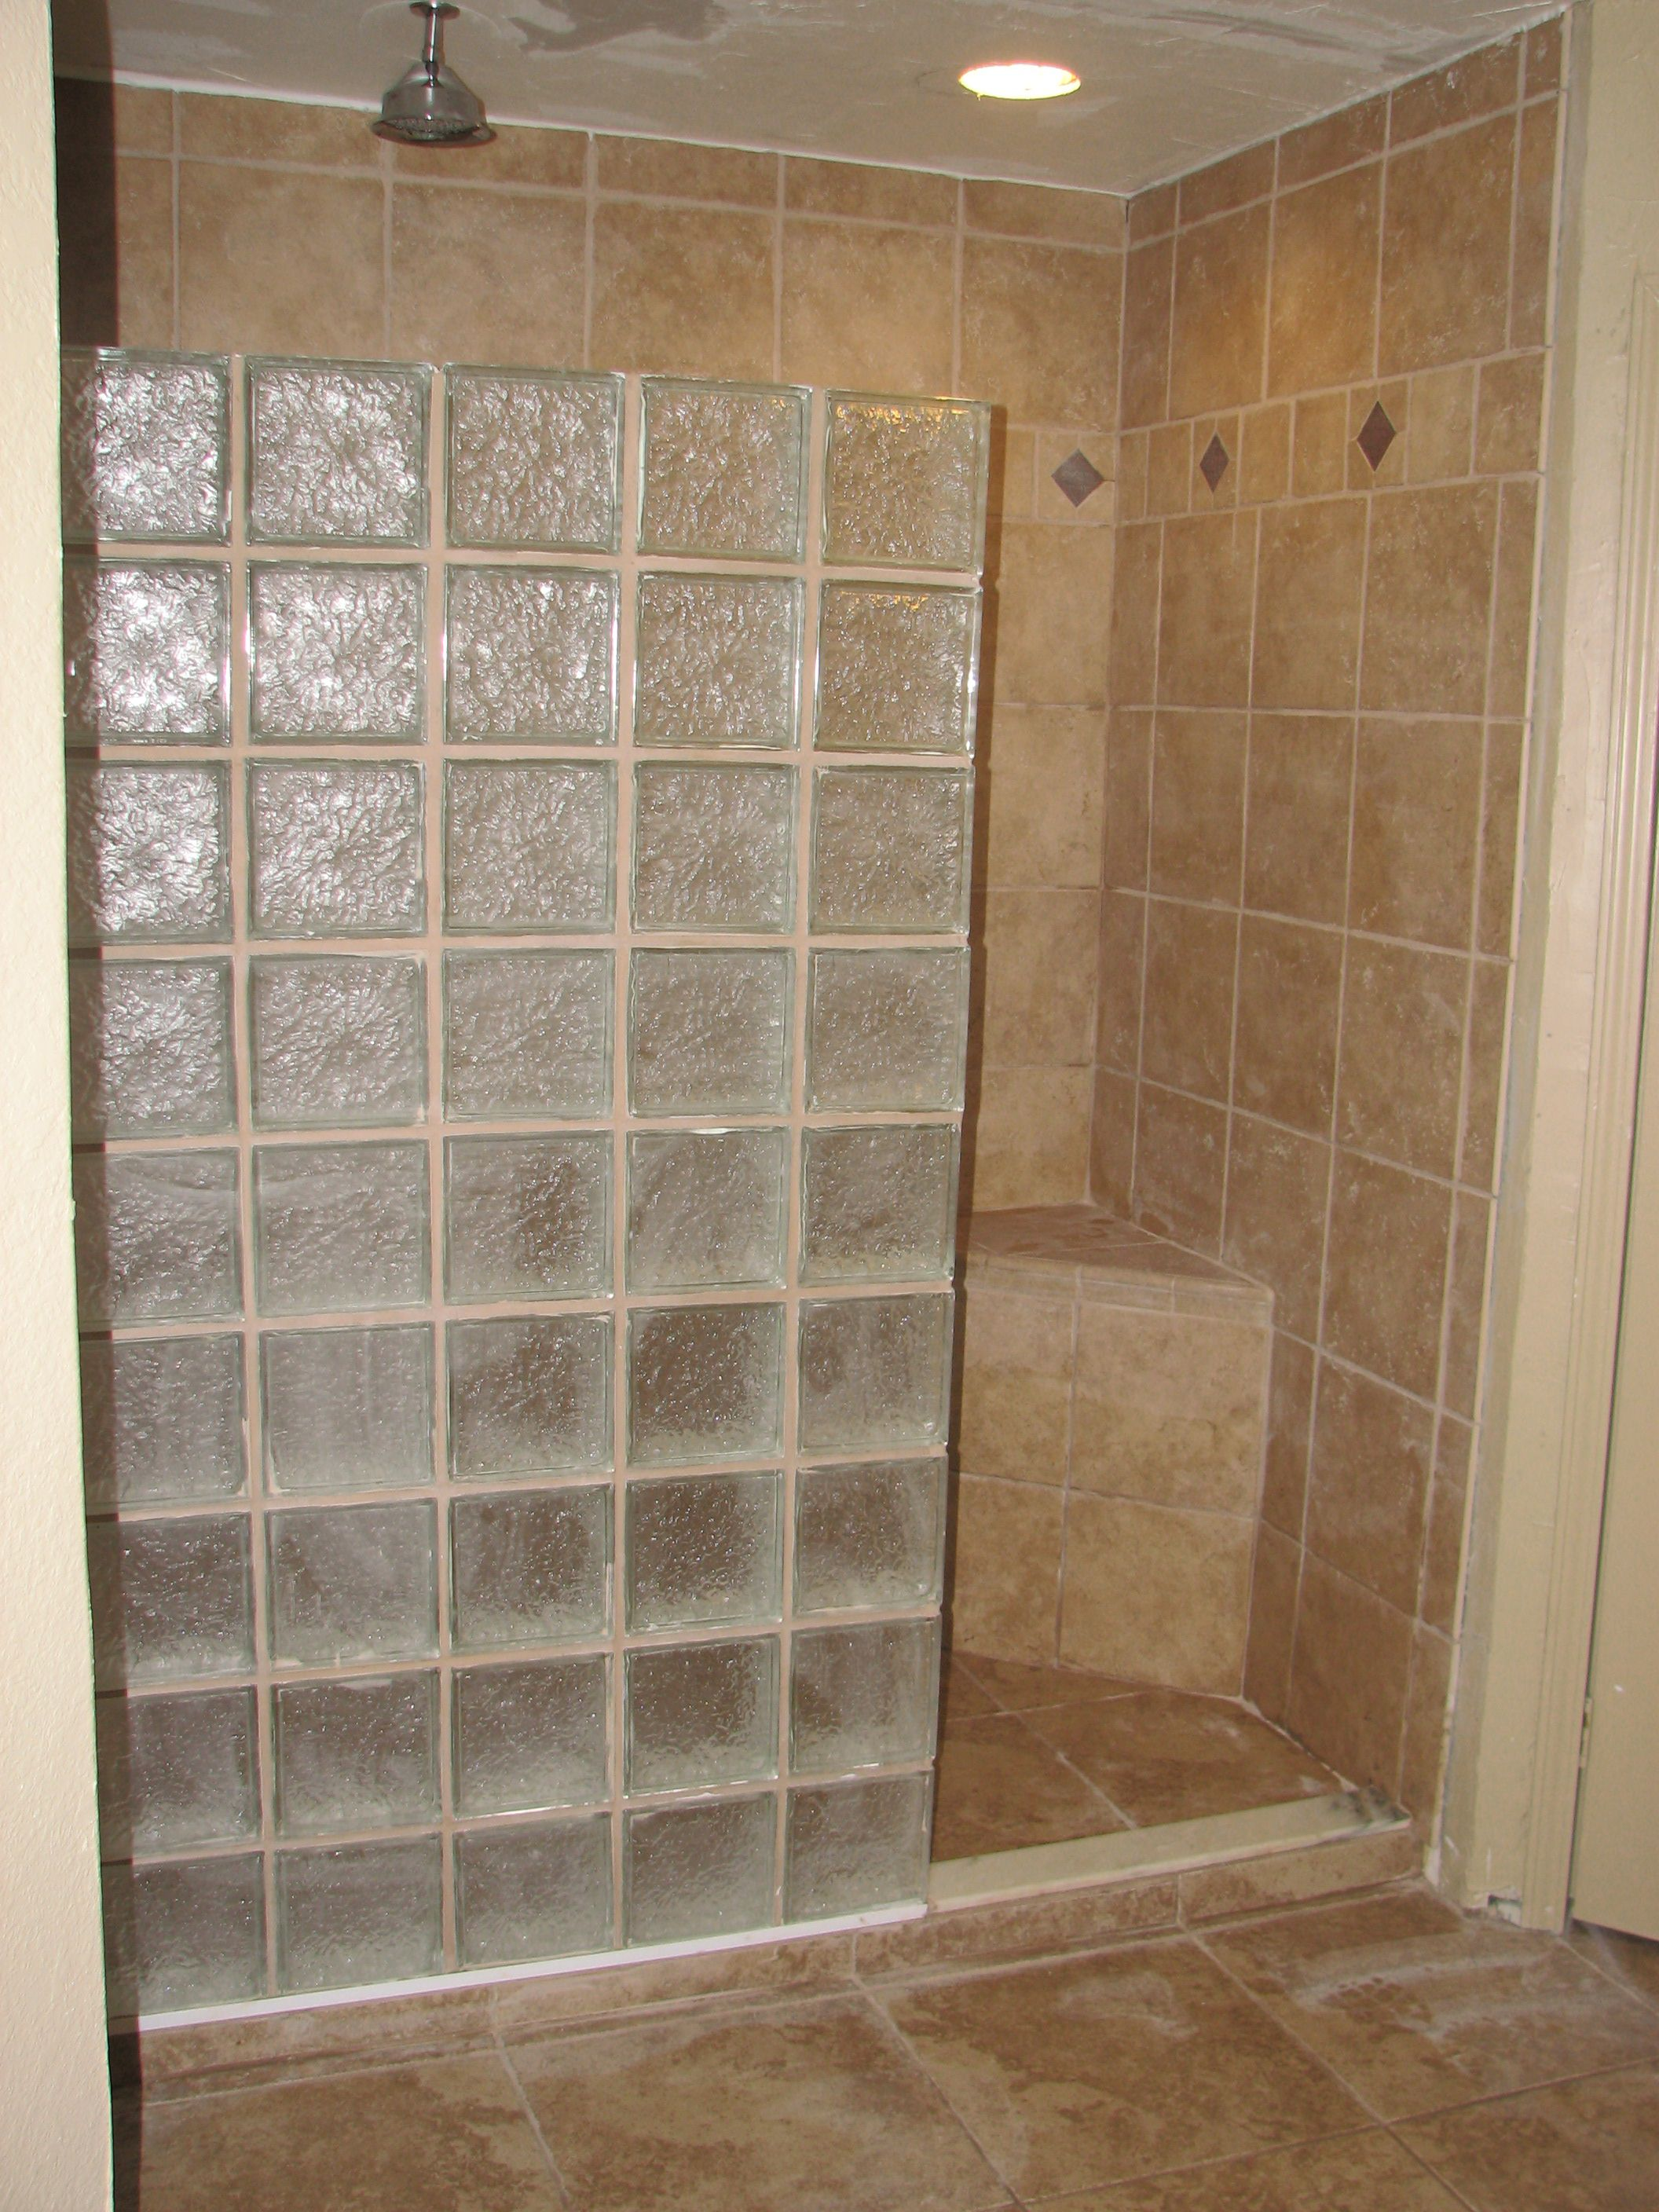 Bathroom Small Bathroom Remodeling Bathroom Remodel Construction And Handyman Services Shop Small Network Bathroom Renovations